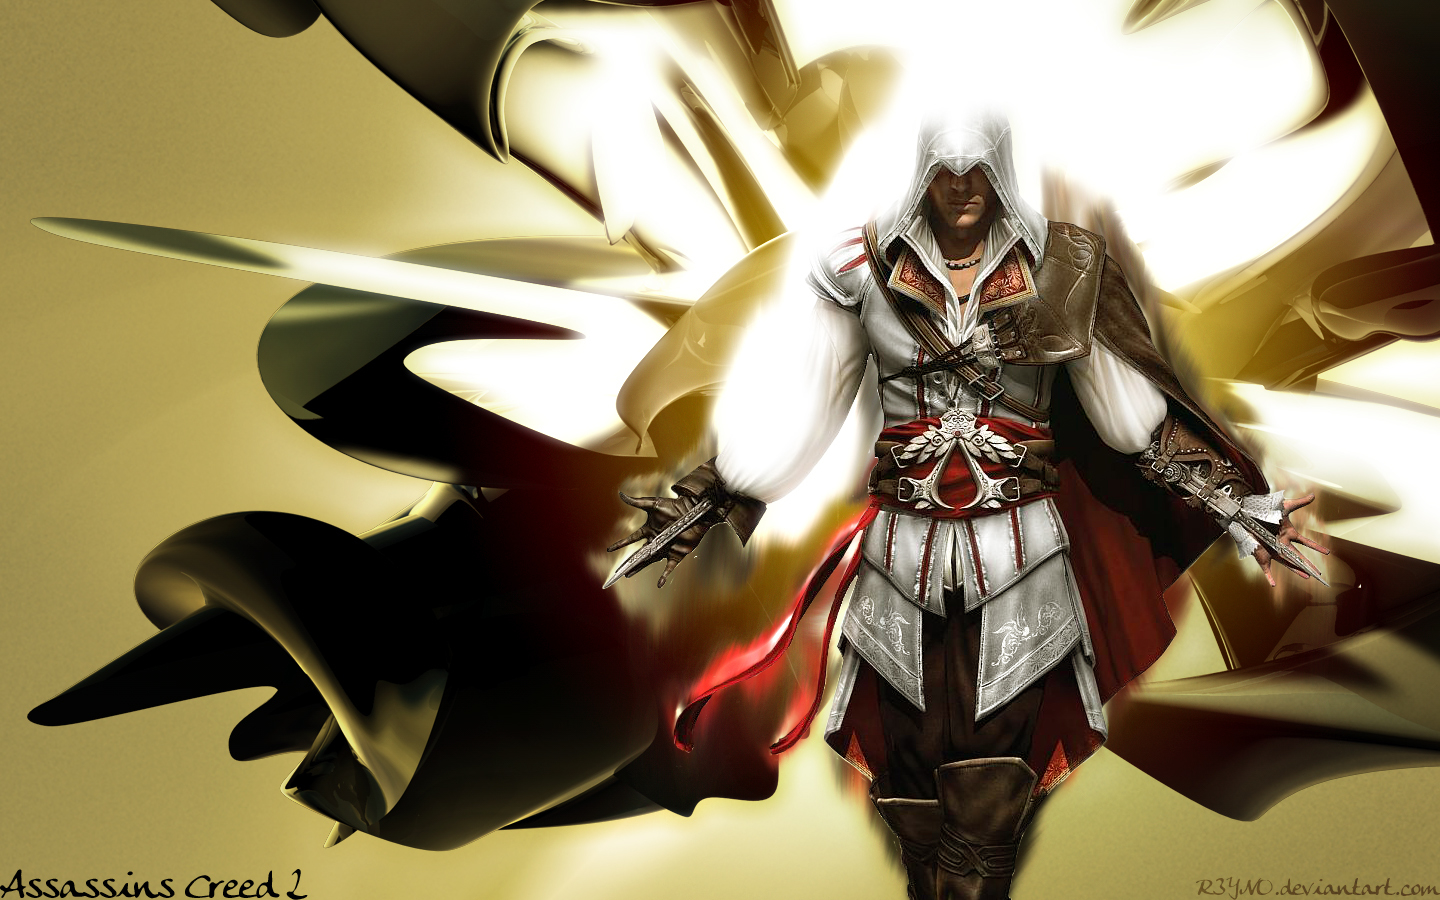 Assassin creed wp AC HD Wallpaper